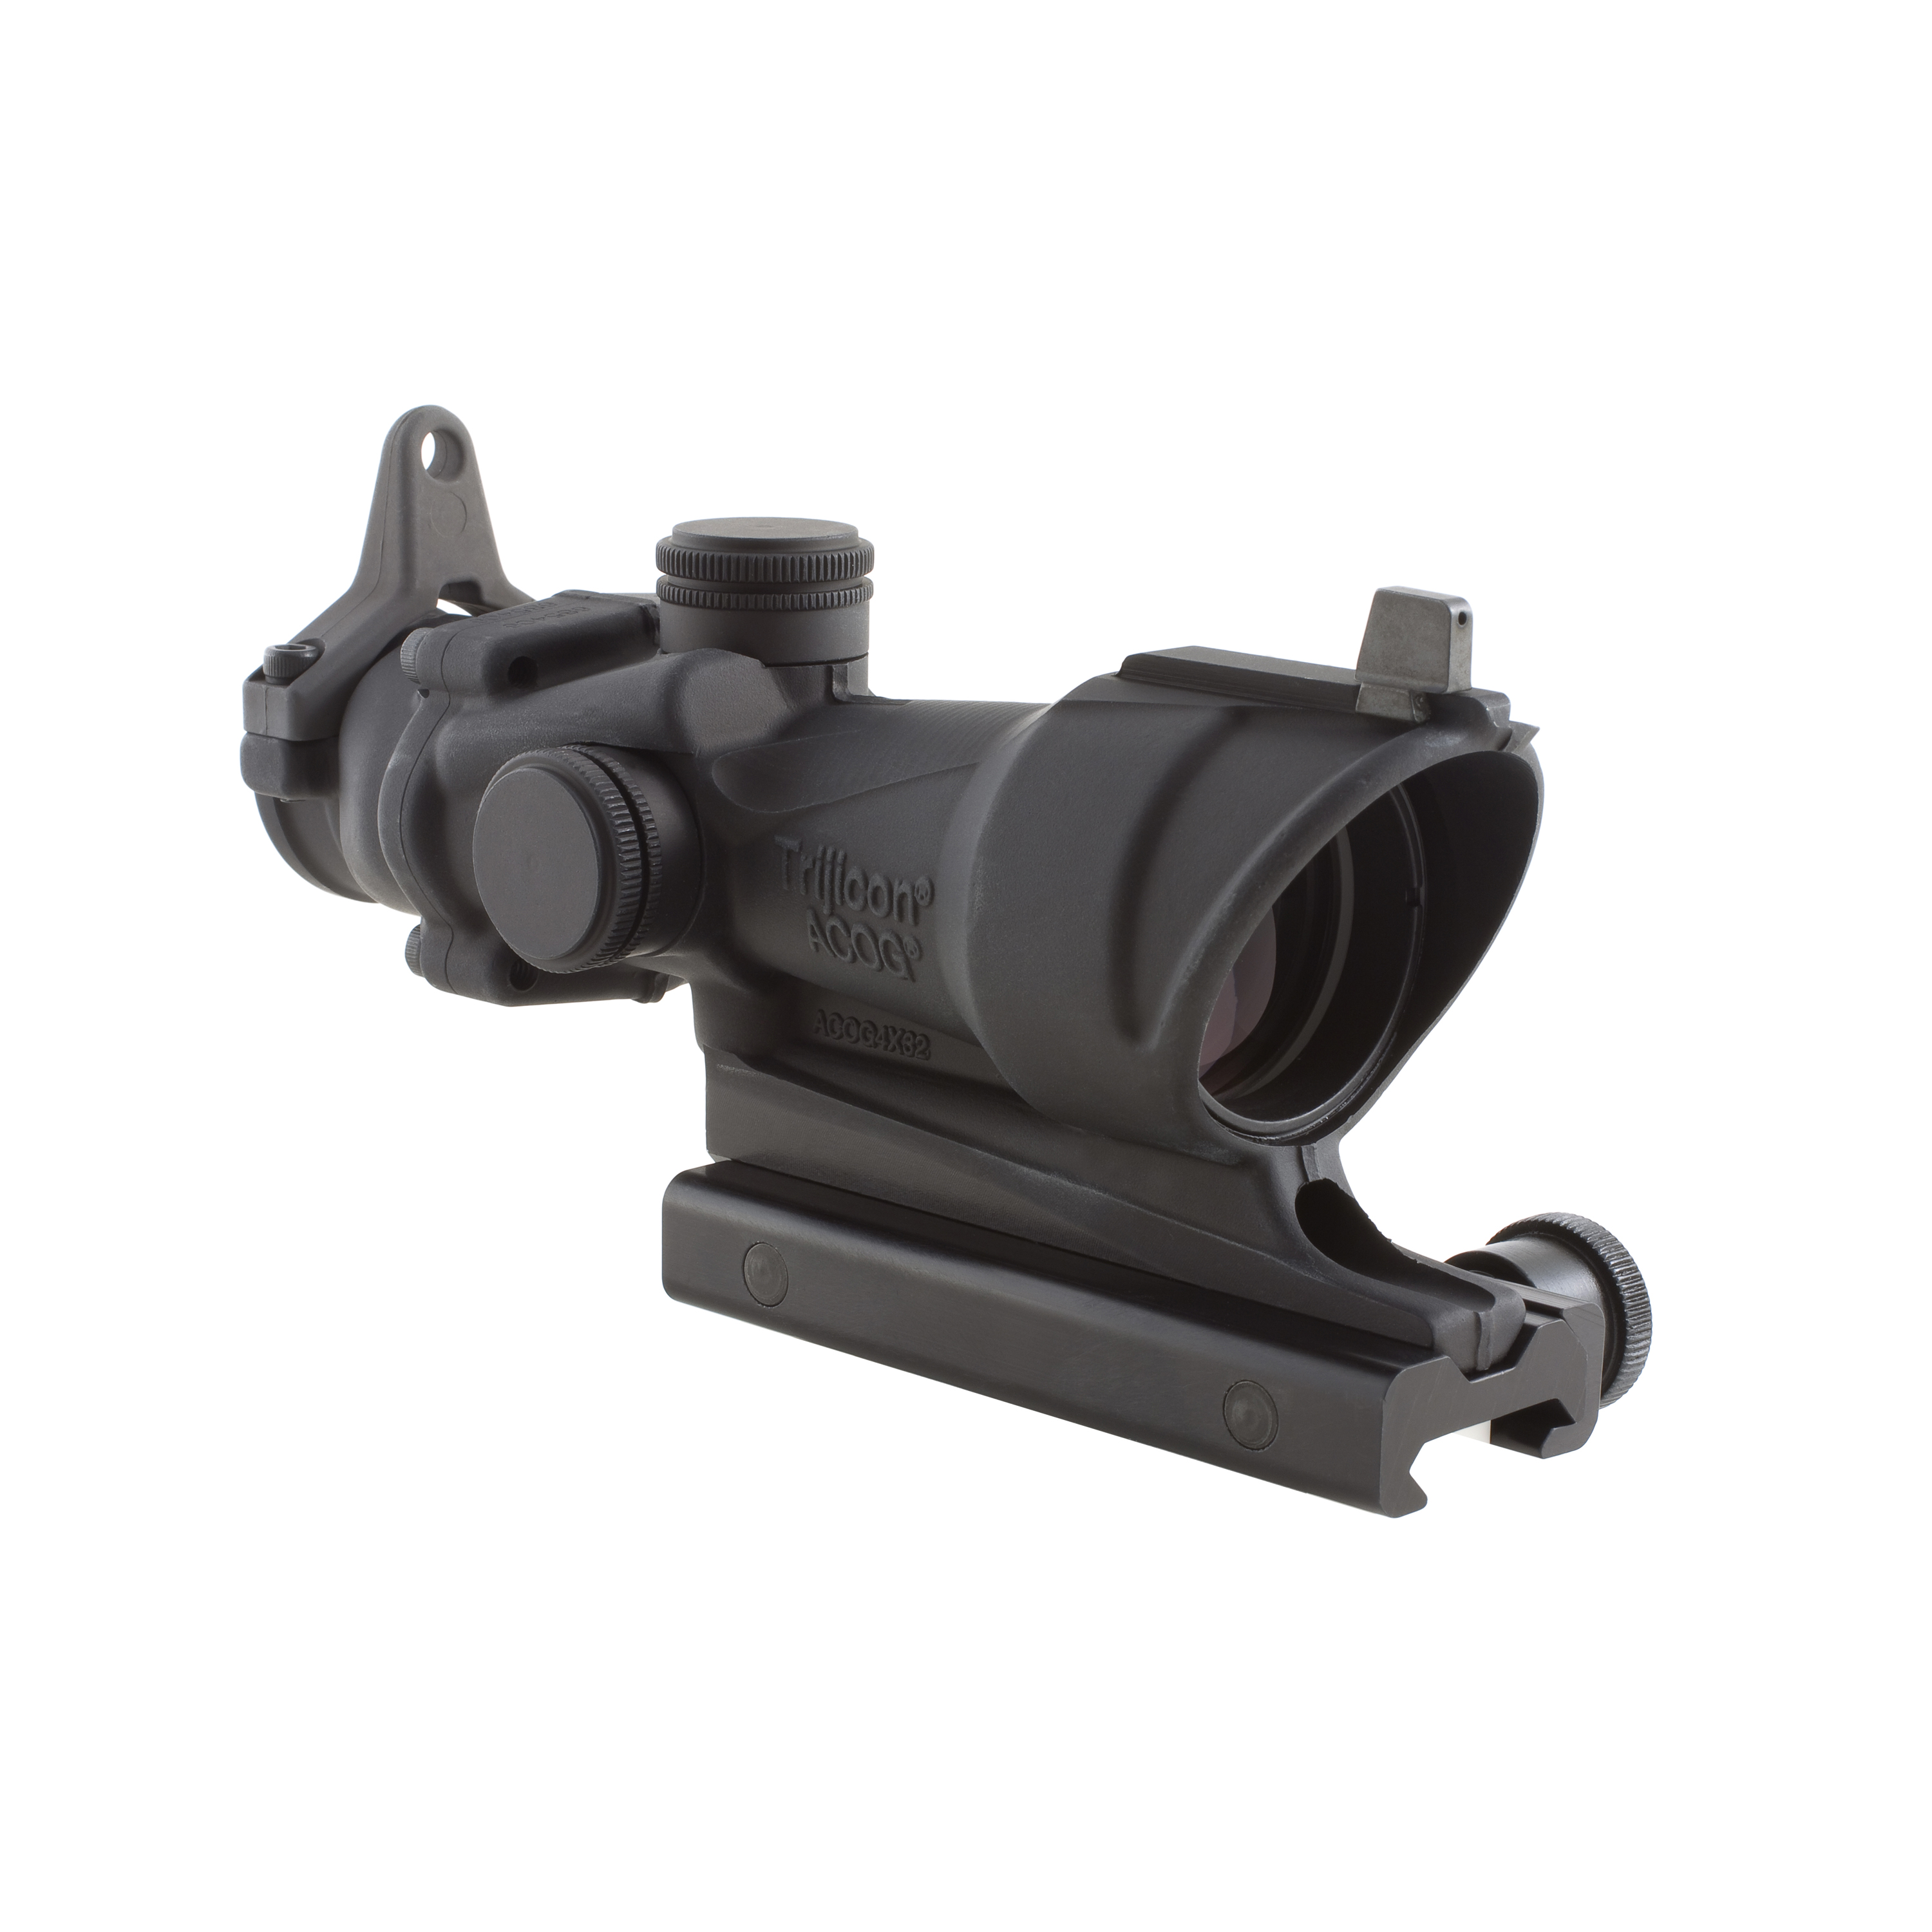 Trijicon ACOG 4x32mm Center Illumination Scope Amber Crosshair .308 Ballistic Reticle with TA51 Mount Backup Iron... by Trijicon